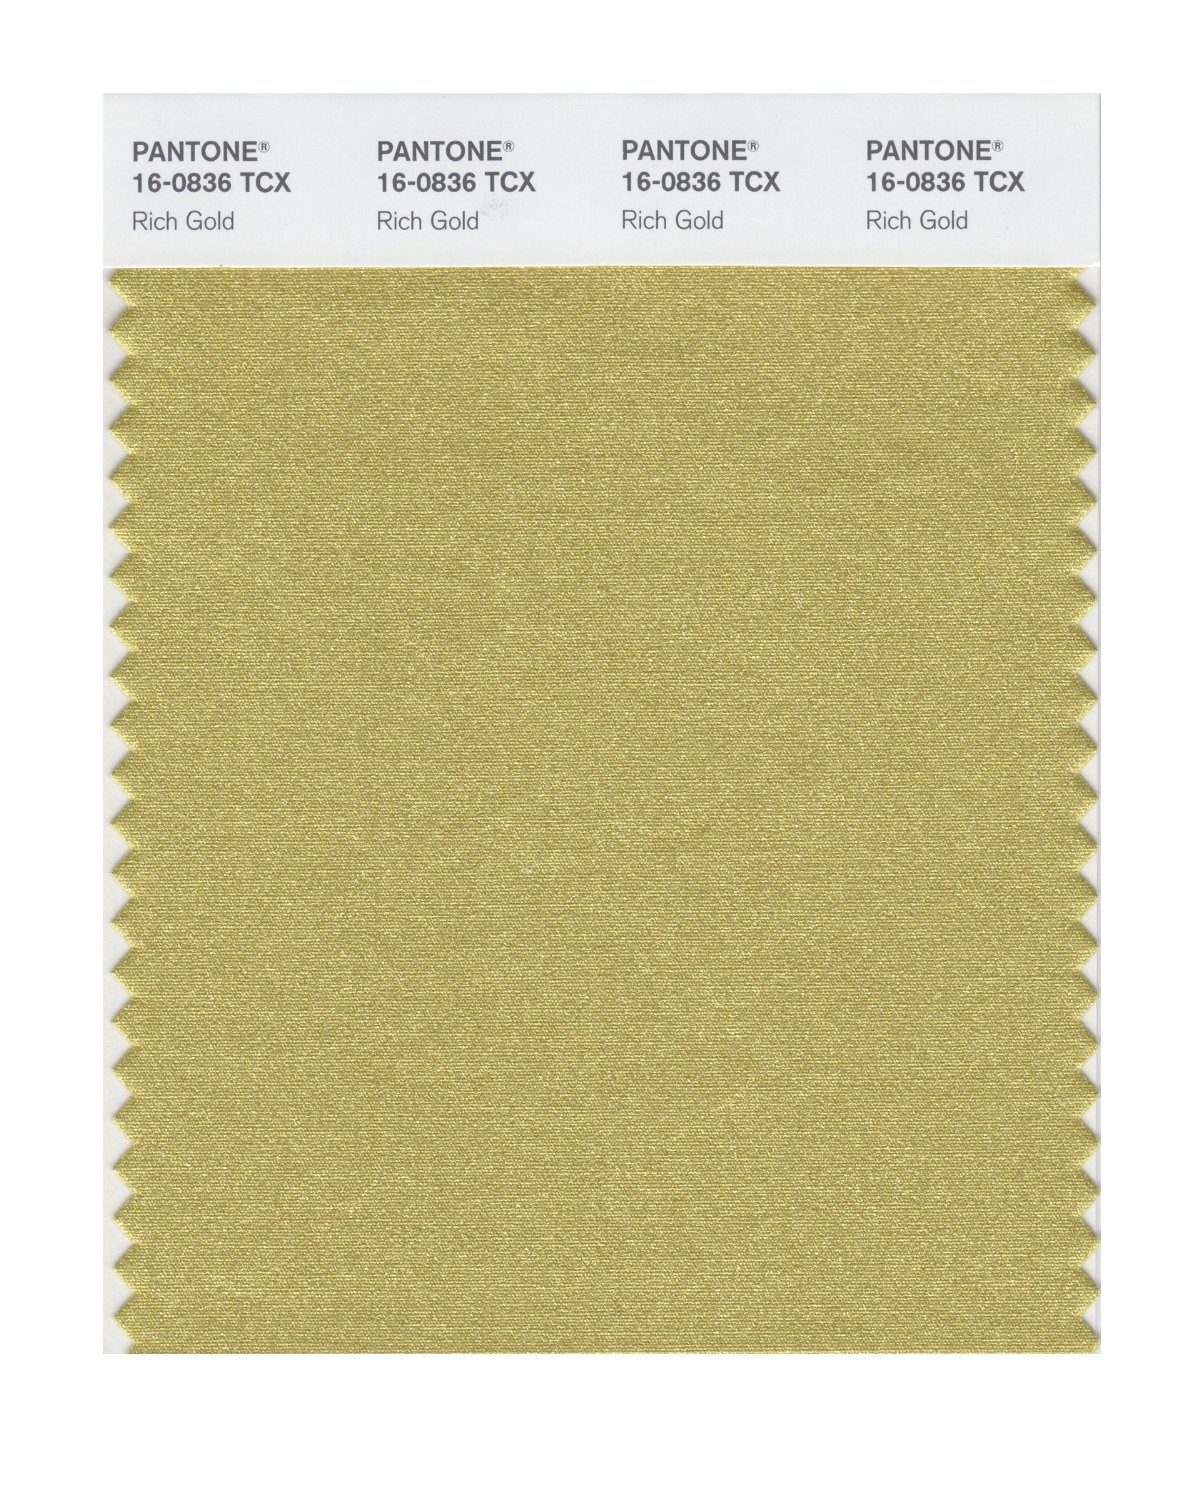 Pantone Smart Swatch 16-0836 Rich Gold